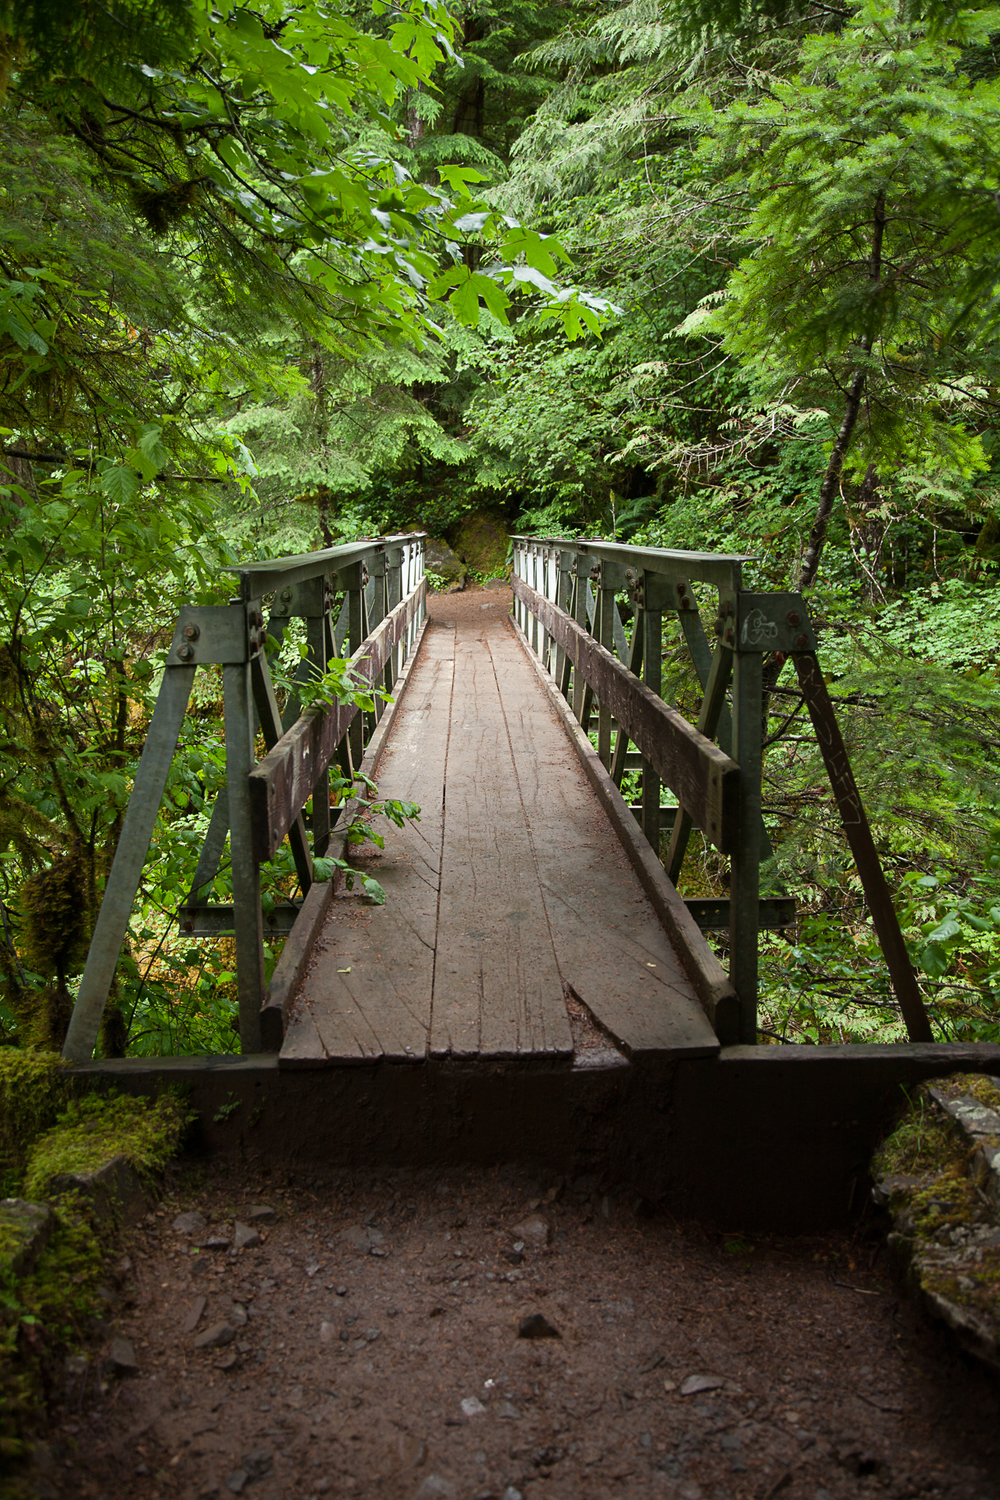 High Bridge - one of only two places where the trail crosses the river.